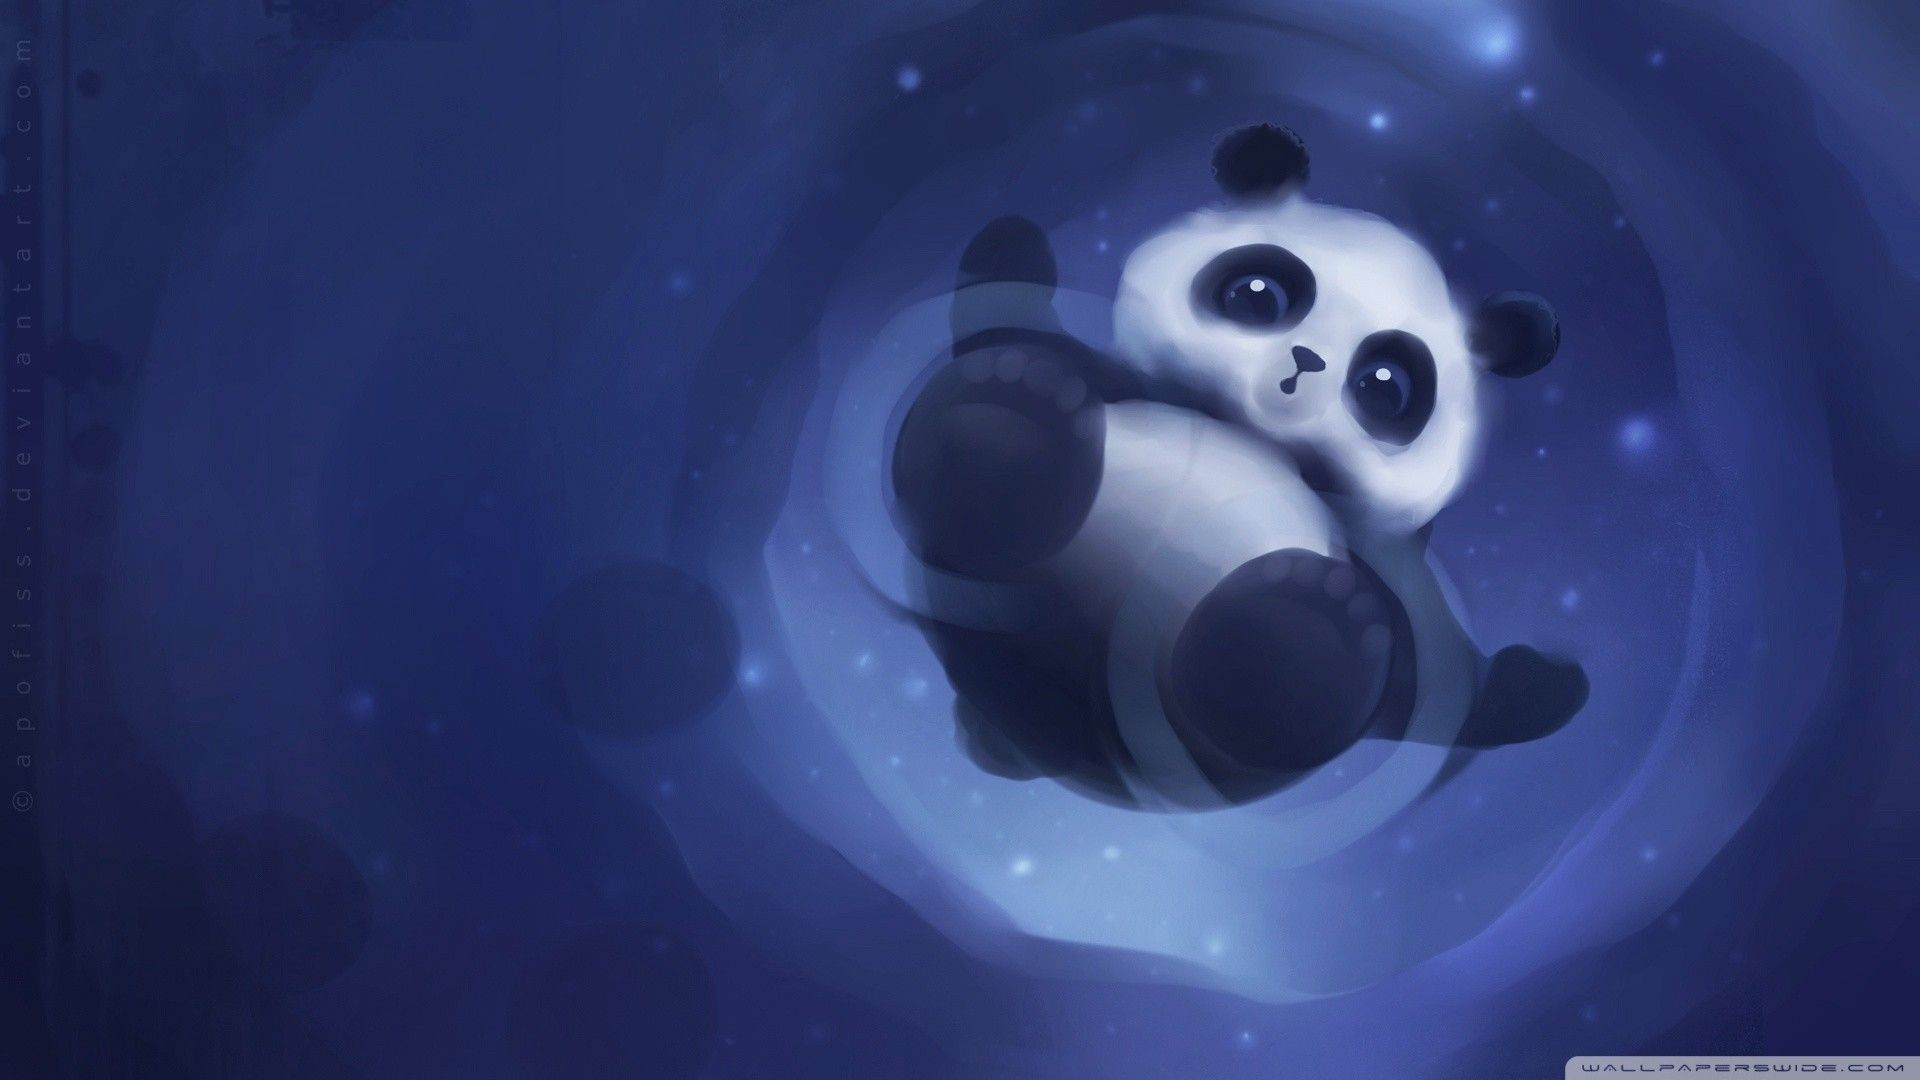 Cartoon Panda Wallpapers Top Free Cartoon Panda Backgrounds